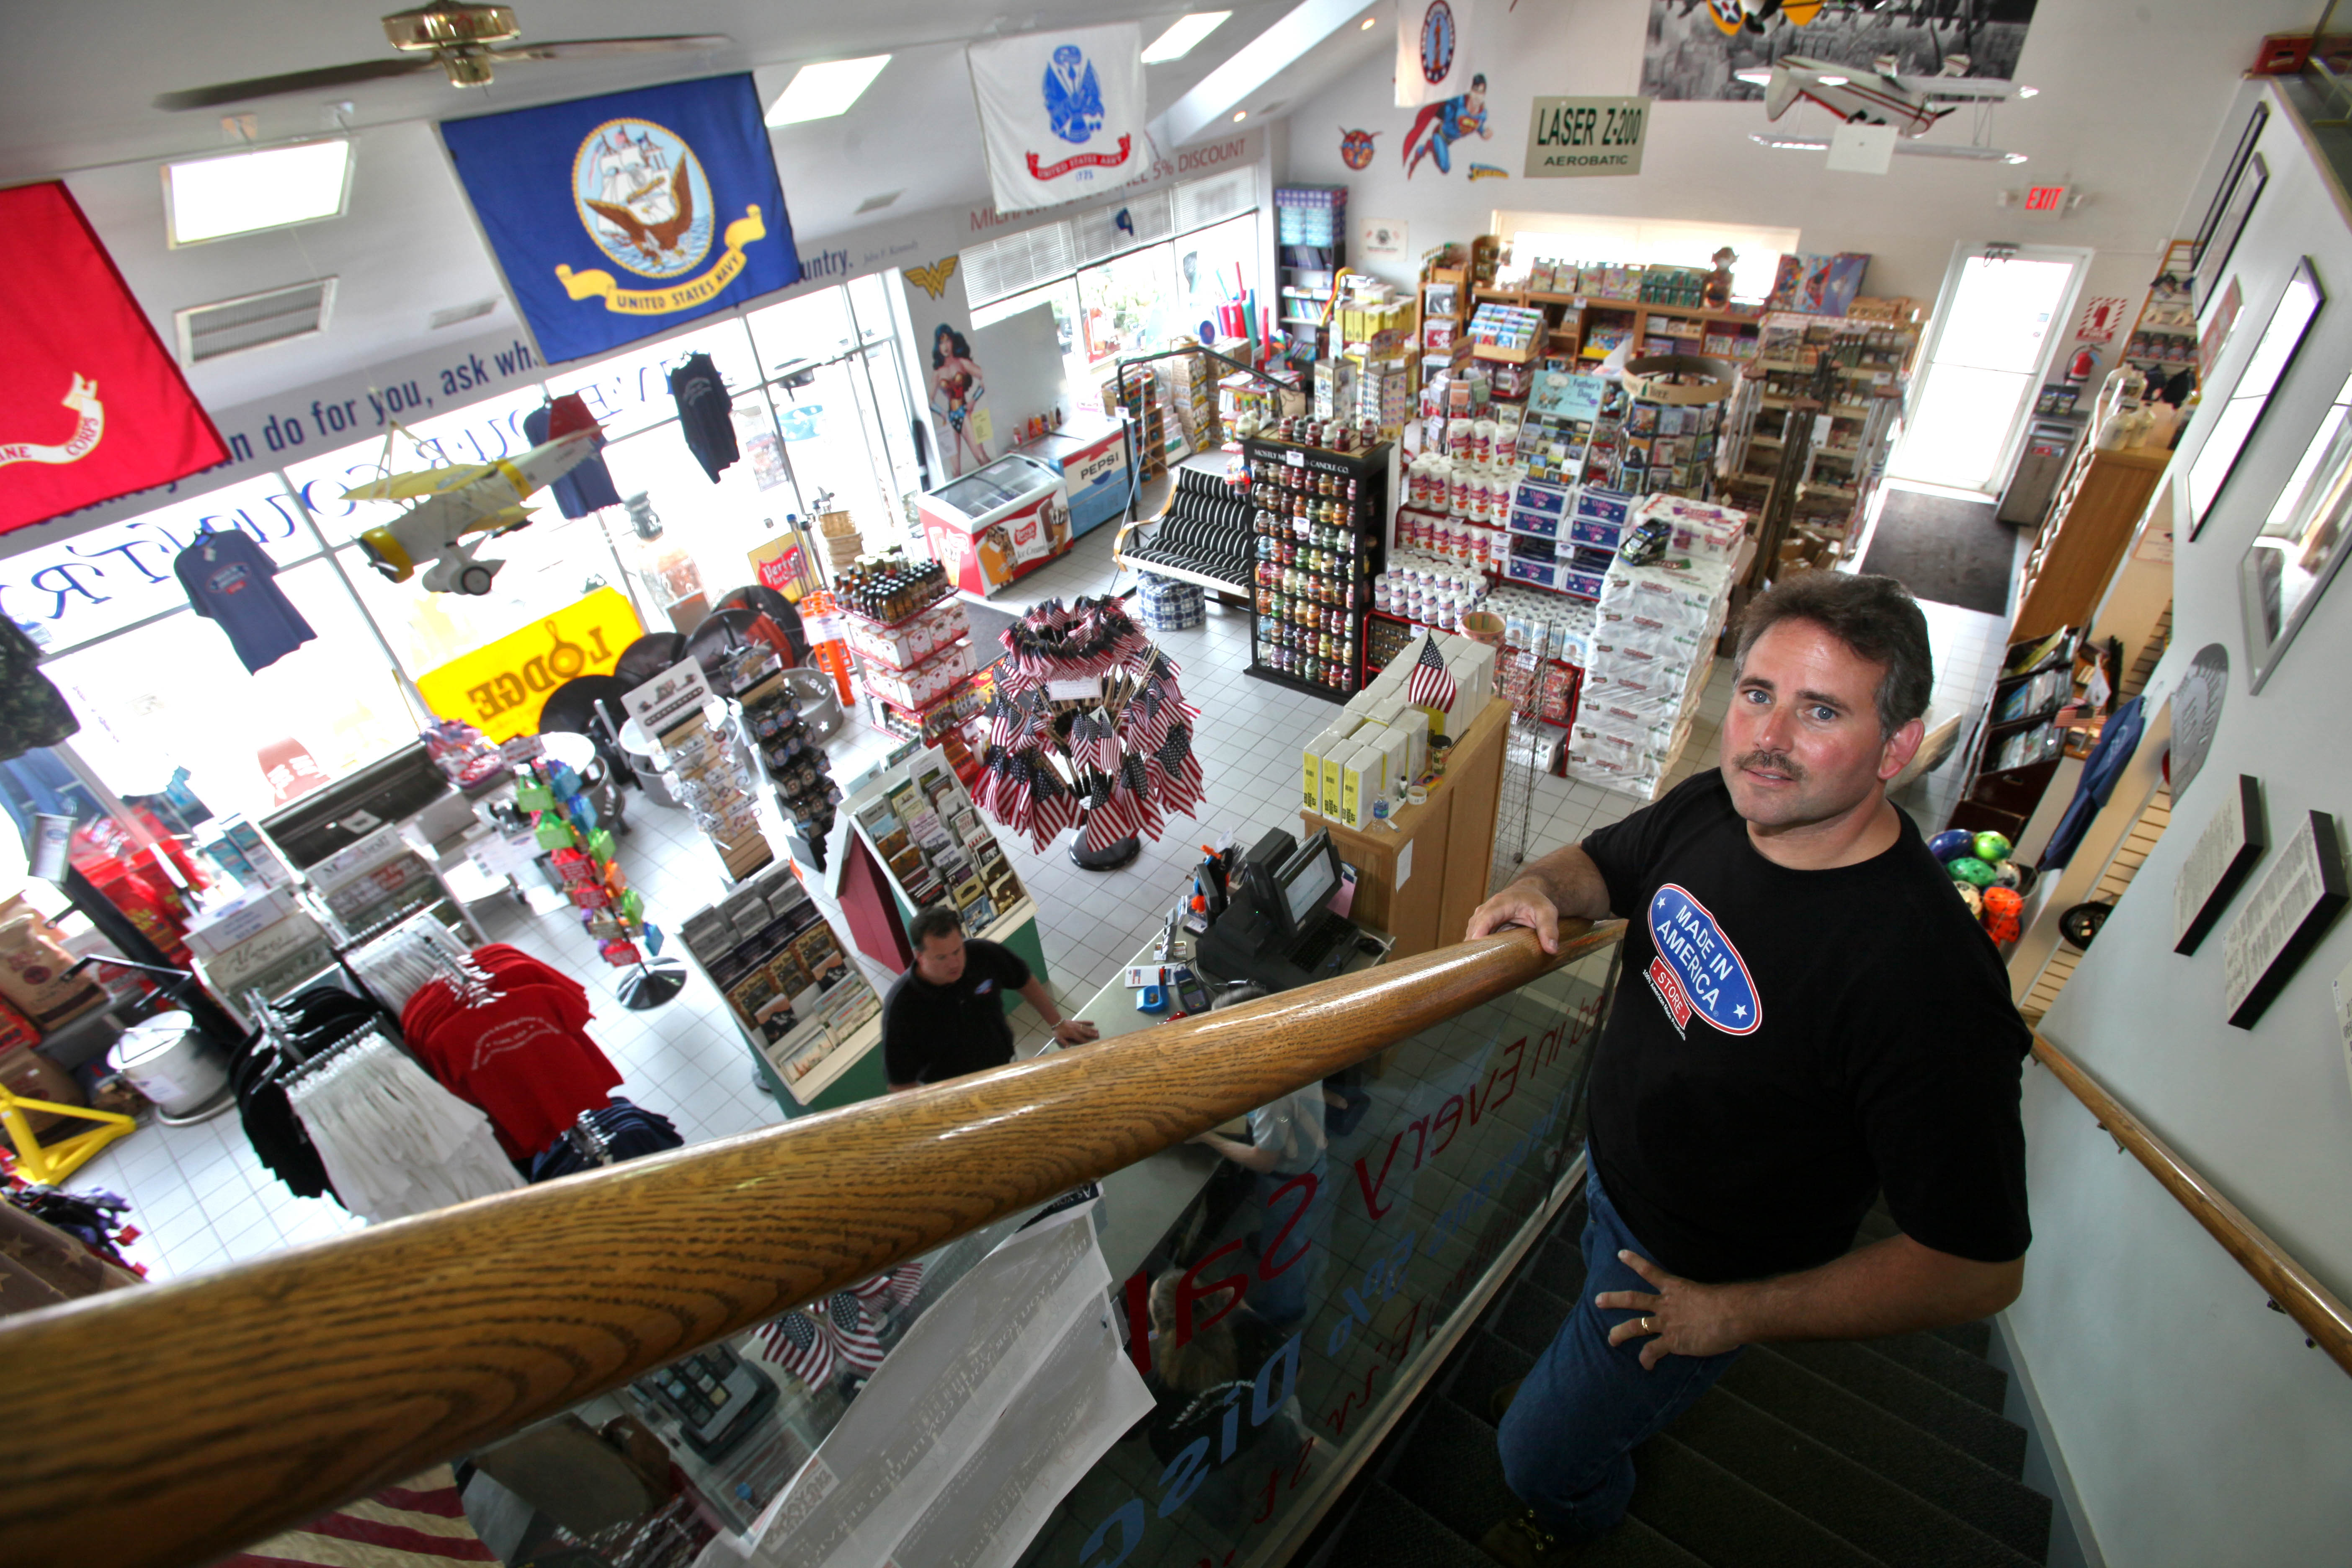 File photo of store owner Mark Andol at the Made in America store in Elma. The Erie County Legislature approved legislation that would require all major county purchases to be Made in America. (Robert Kirkham/The Buffalo News)